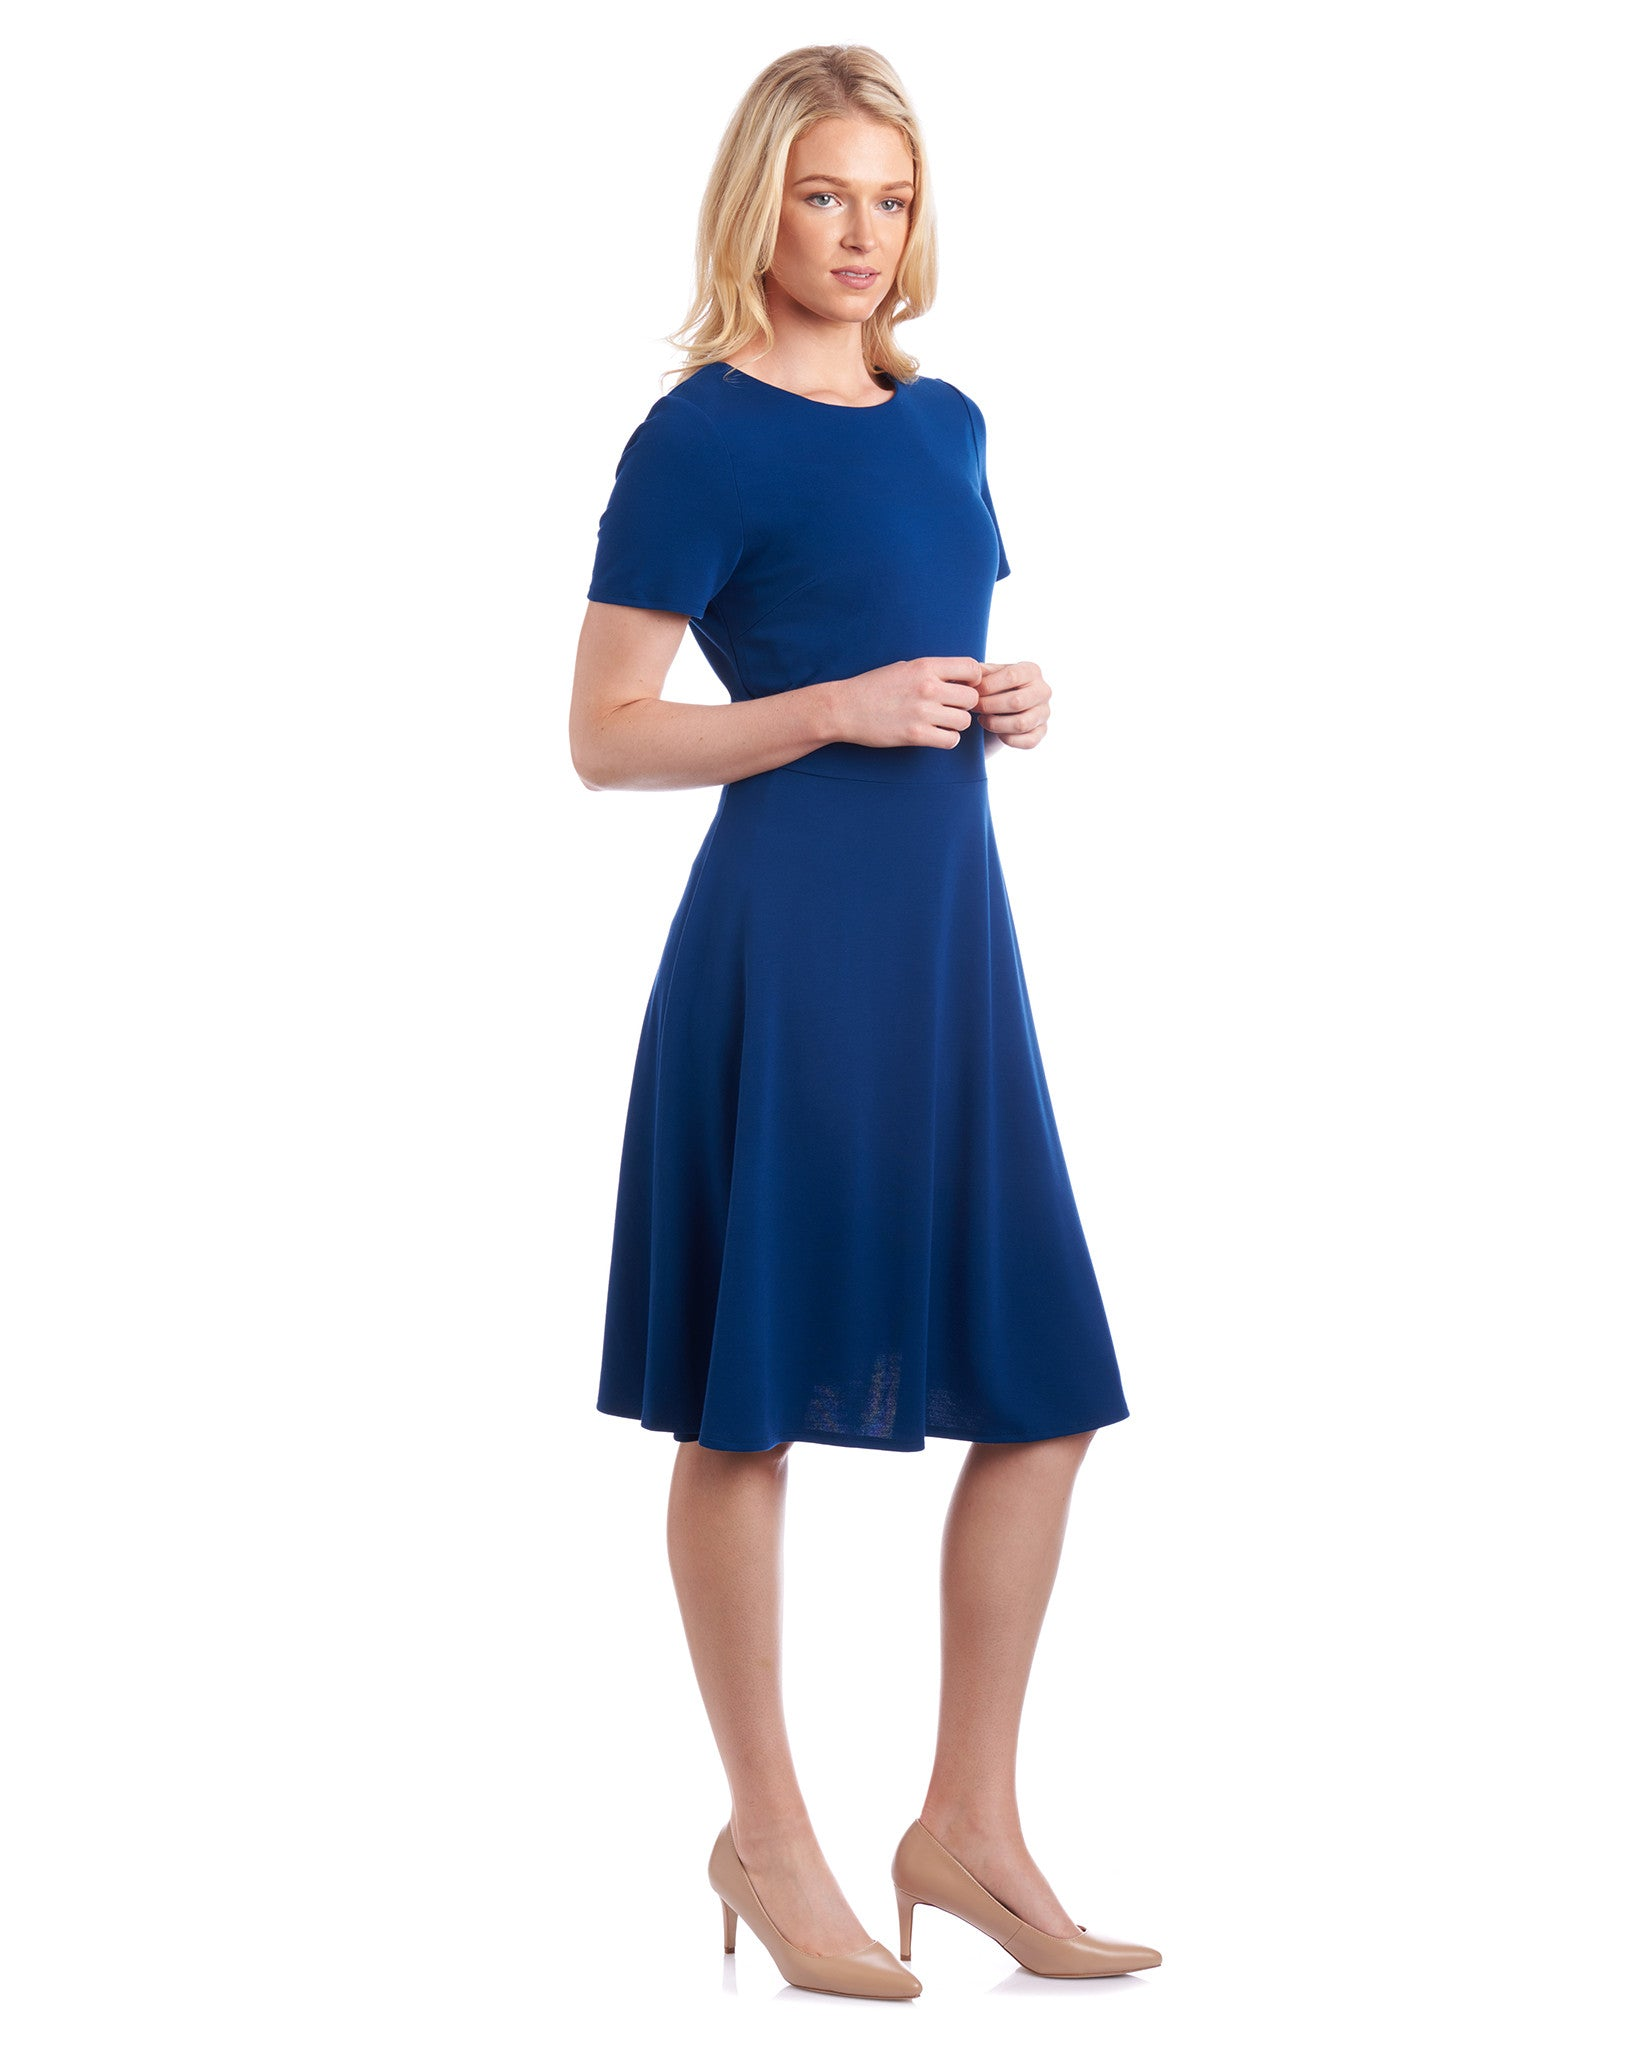 Tahlo fit & flare dress in colour to suit your workwear wardrobe.